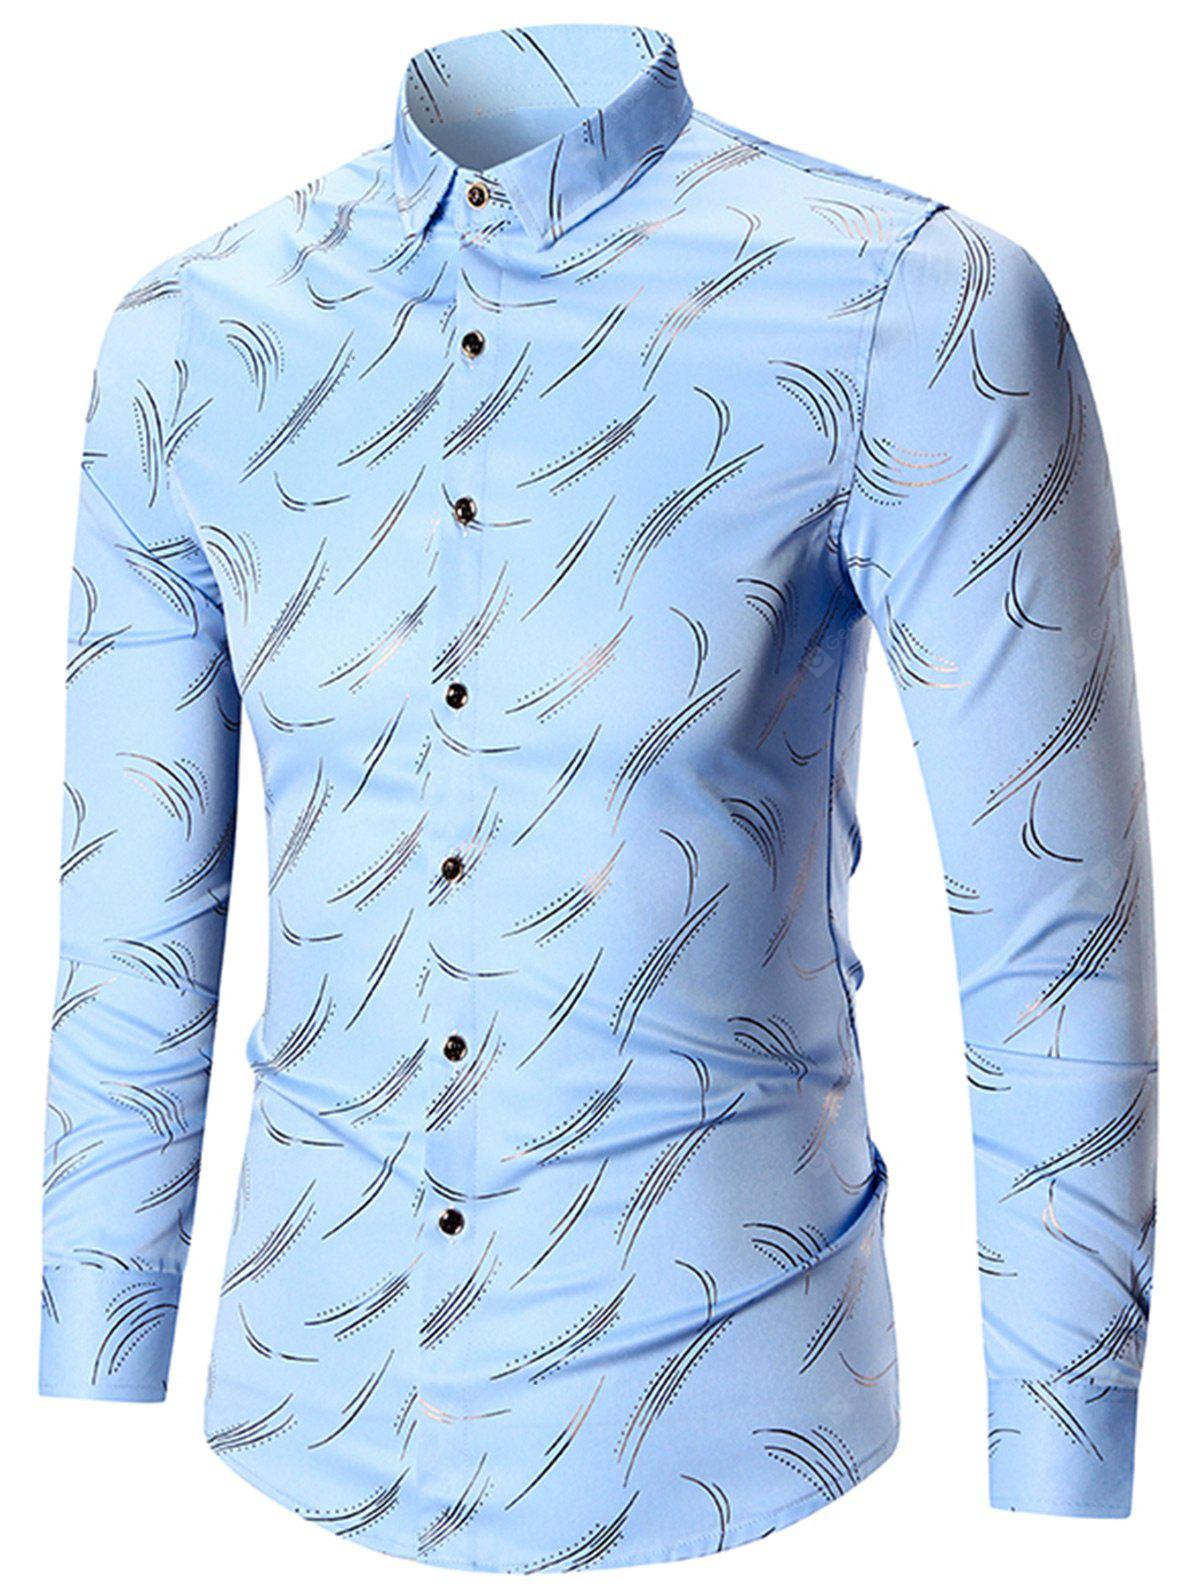 Printed Button Up Plus Size Shirt